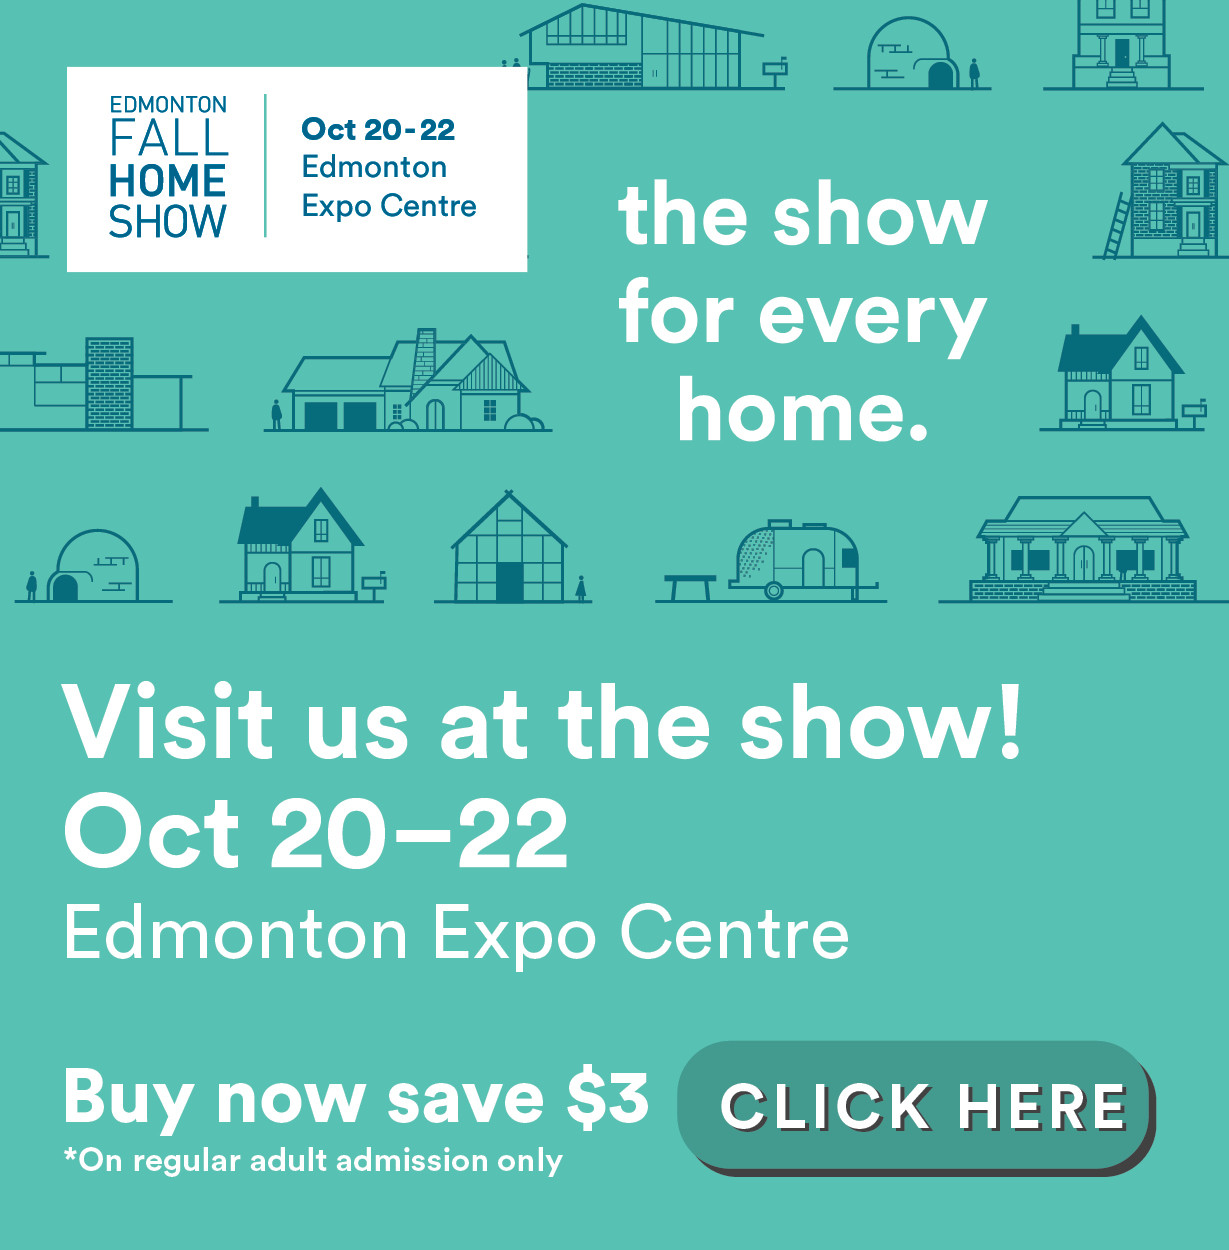 The show for every home. Visit us at the show! Oct 21-23, Edmonton Expo Centre. Buy now and save $3. Click here to buy tickets